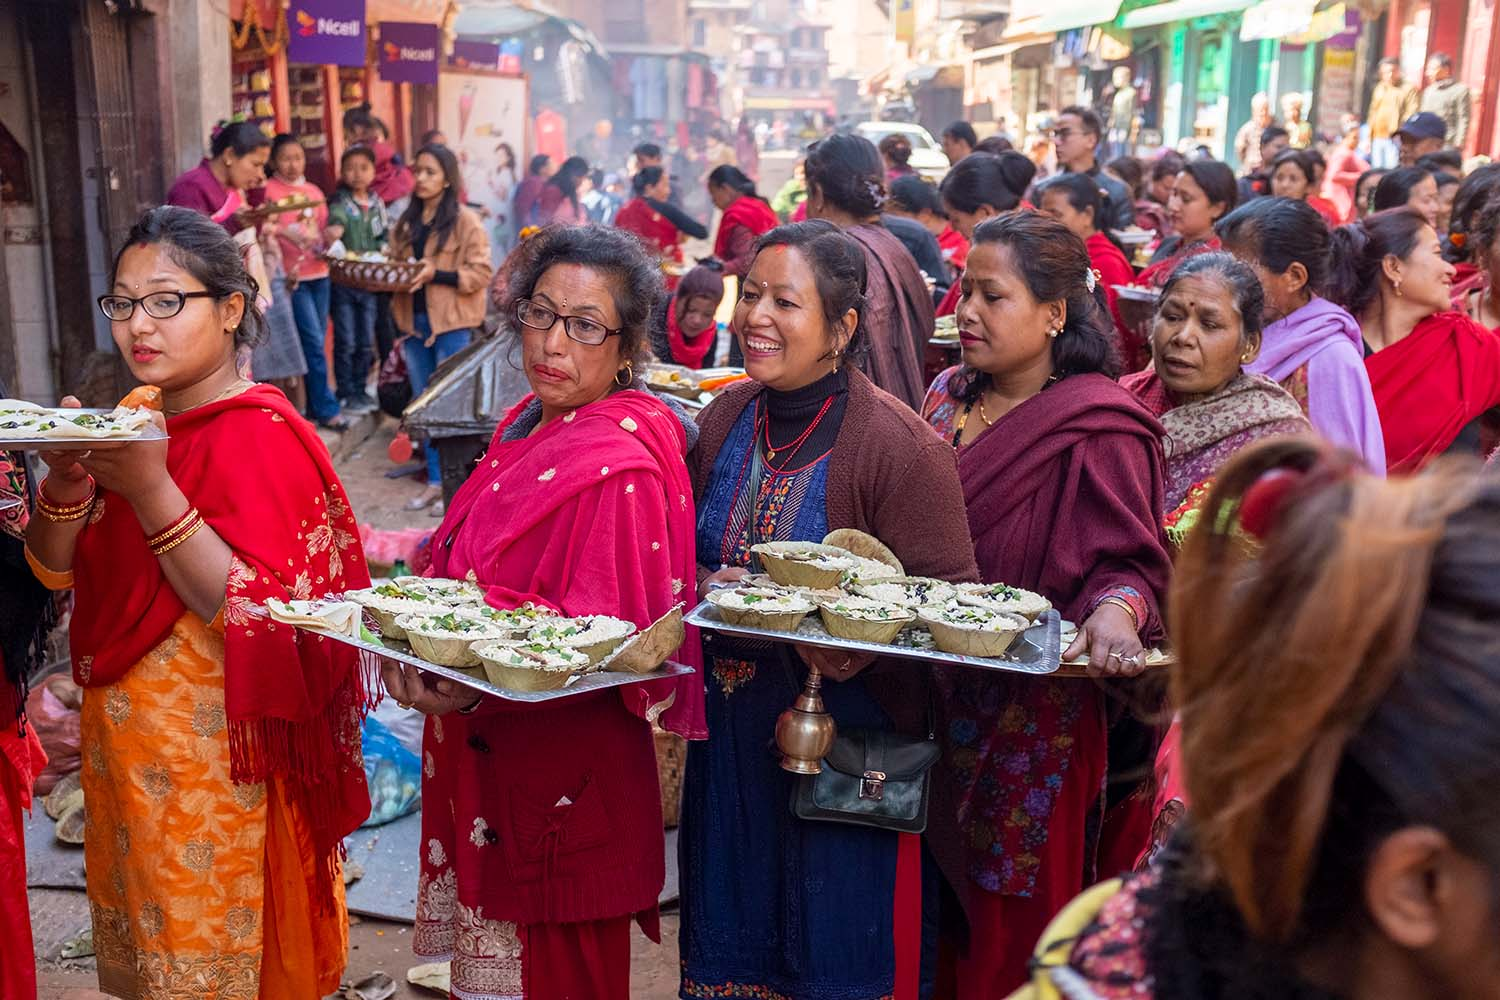 Nepali women with offerings during a festival